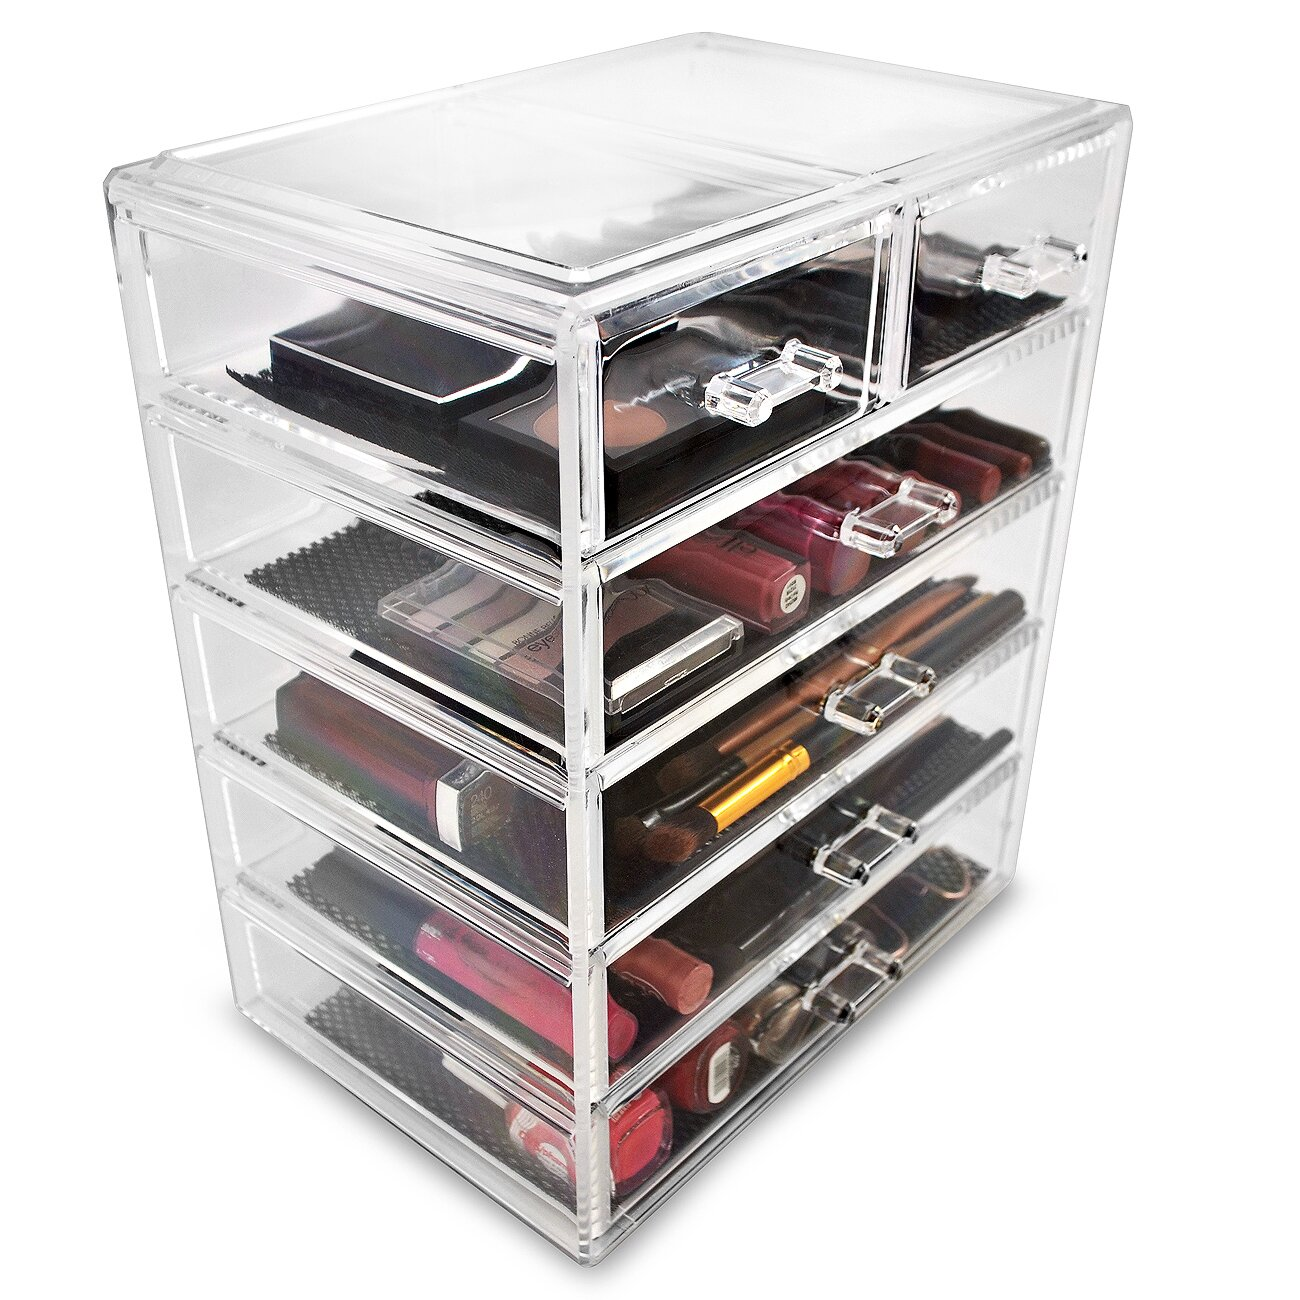 Ggi International Acrylic 6 Drawer Makeup Organizer With